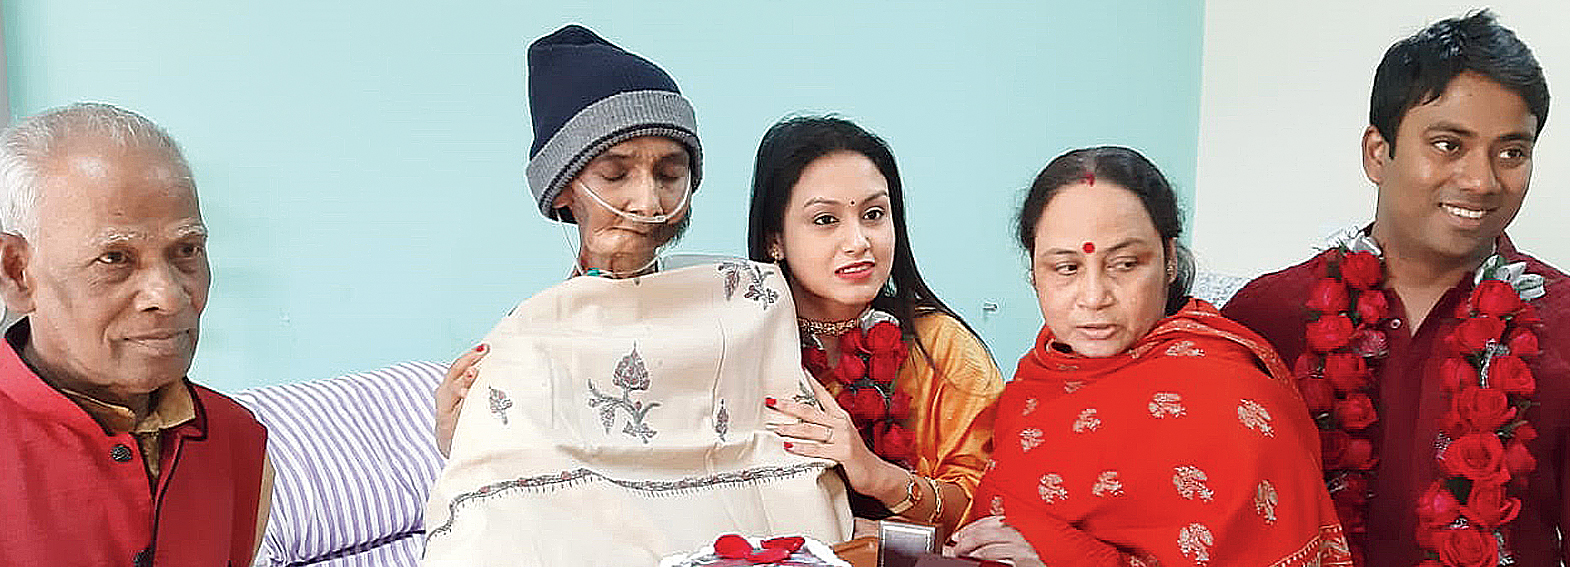 Deotima with her father Sandip Sarkar at the hospital, along with her mother Sudipta, husband Sudipta Kundu and father-in-law Madan Chandra Kundu (extreme left) on Tuesday